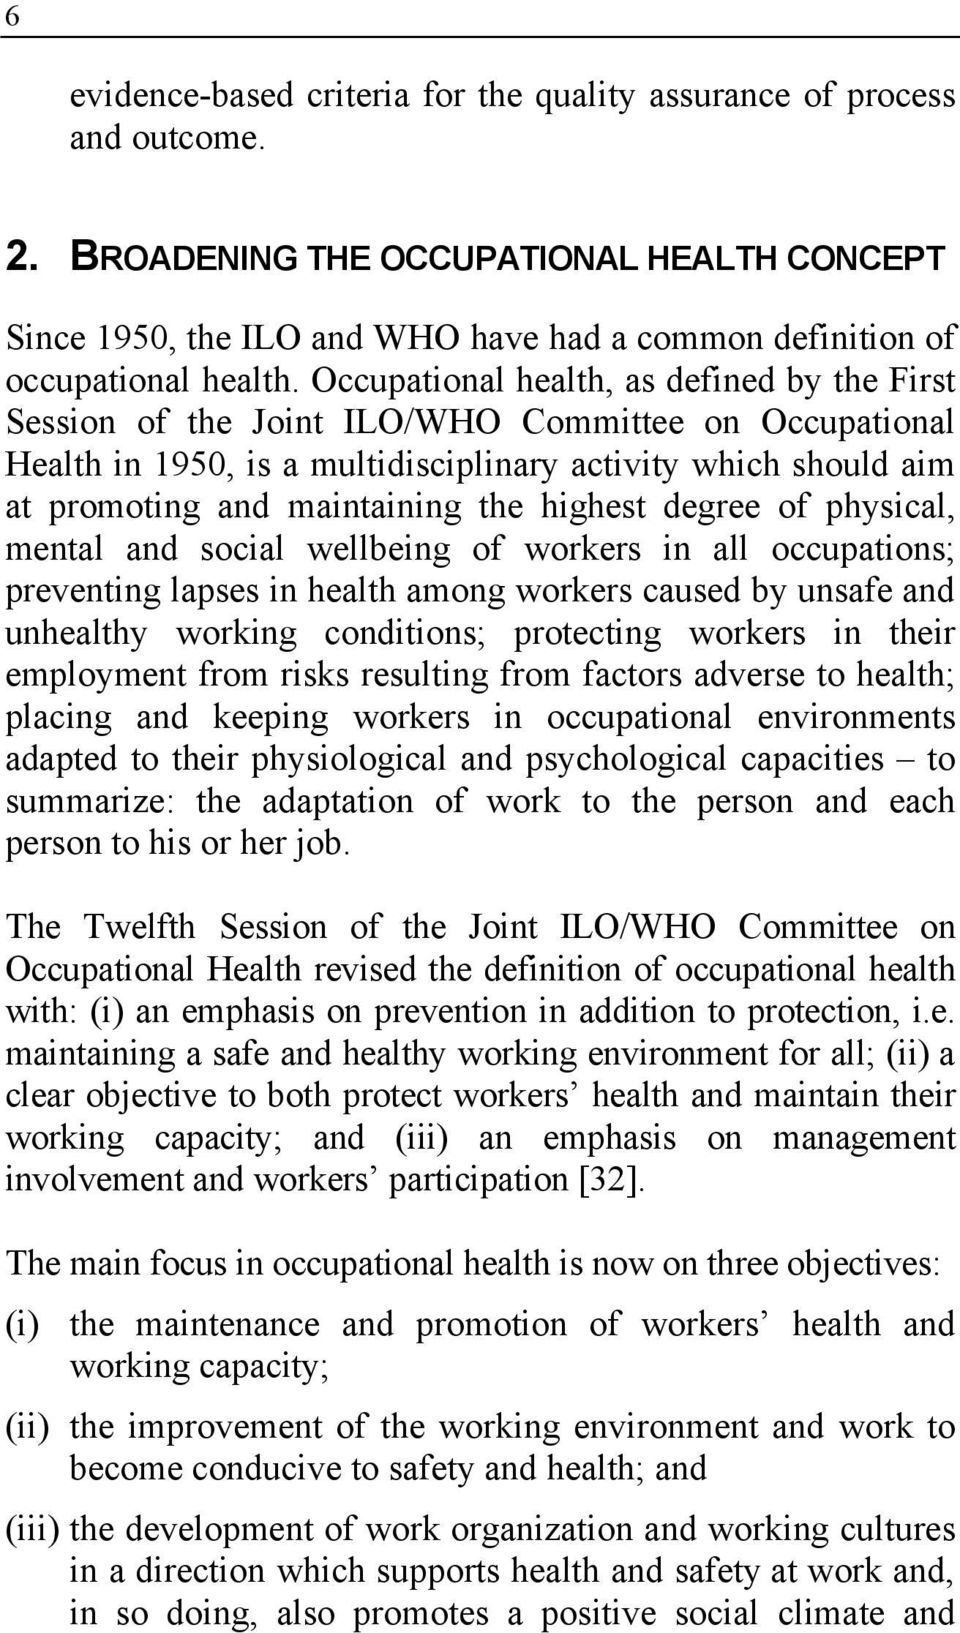 Occupational health, as defined by the First Session of the Joint ILO/WHO Committee on Occupational Health in 1950, is a multidisciplinary activity which should aim at promoting and maintaining the